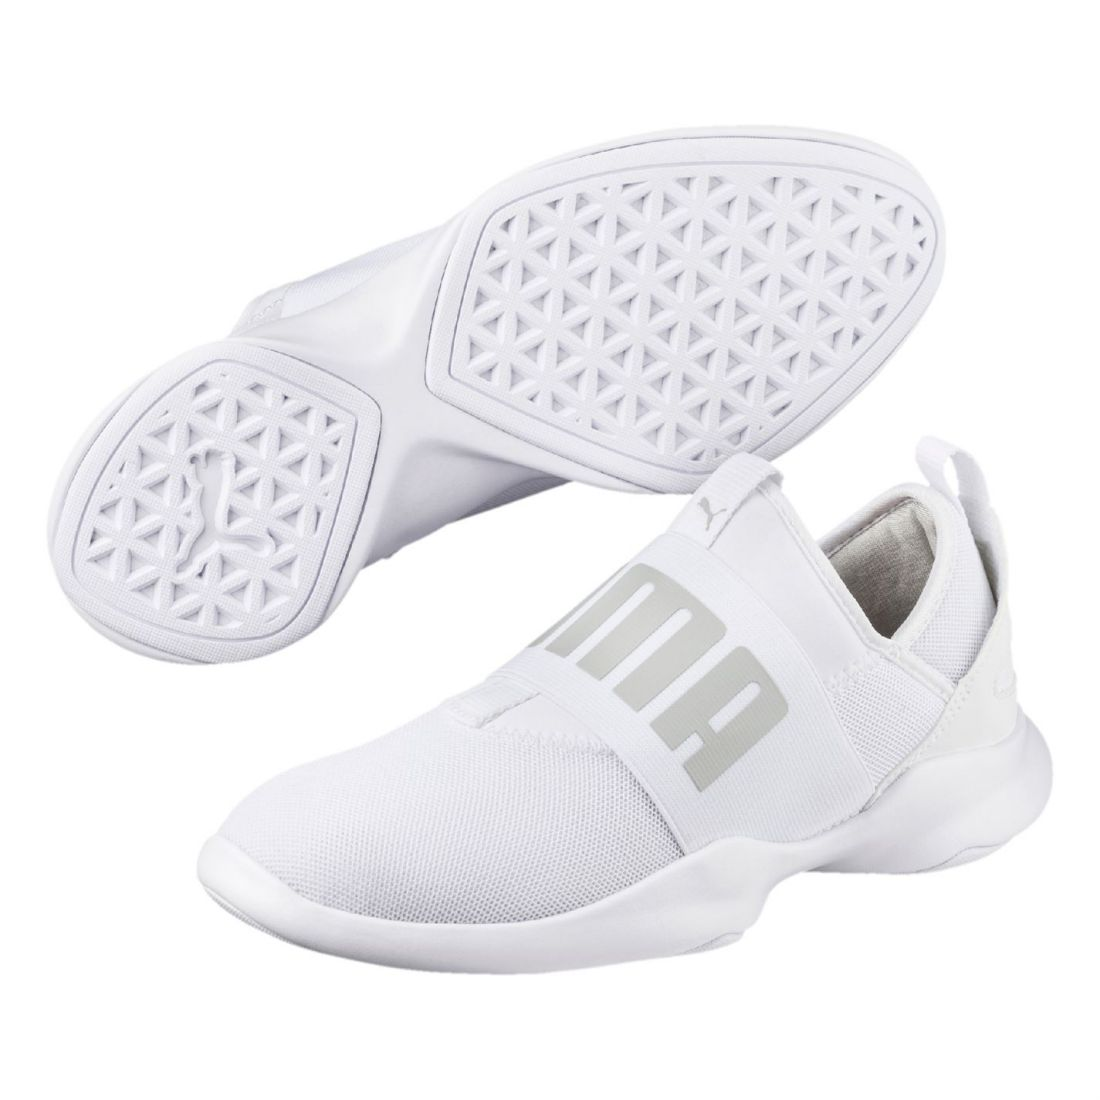 Image is loading Puma-Womens-Dare-Trainers-Slip-On-Strap-Seamless- f164e1137